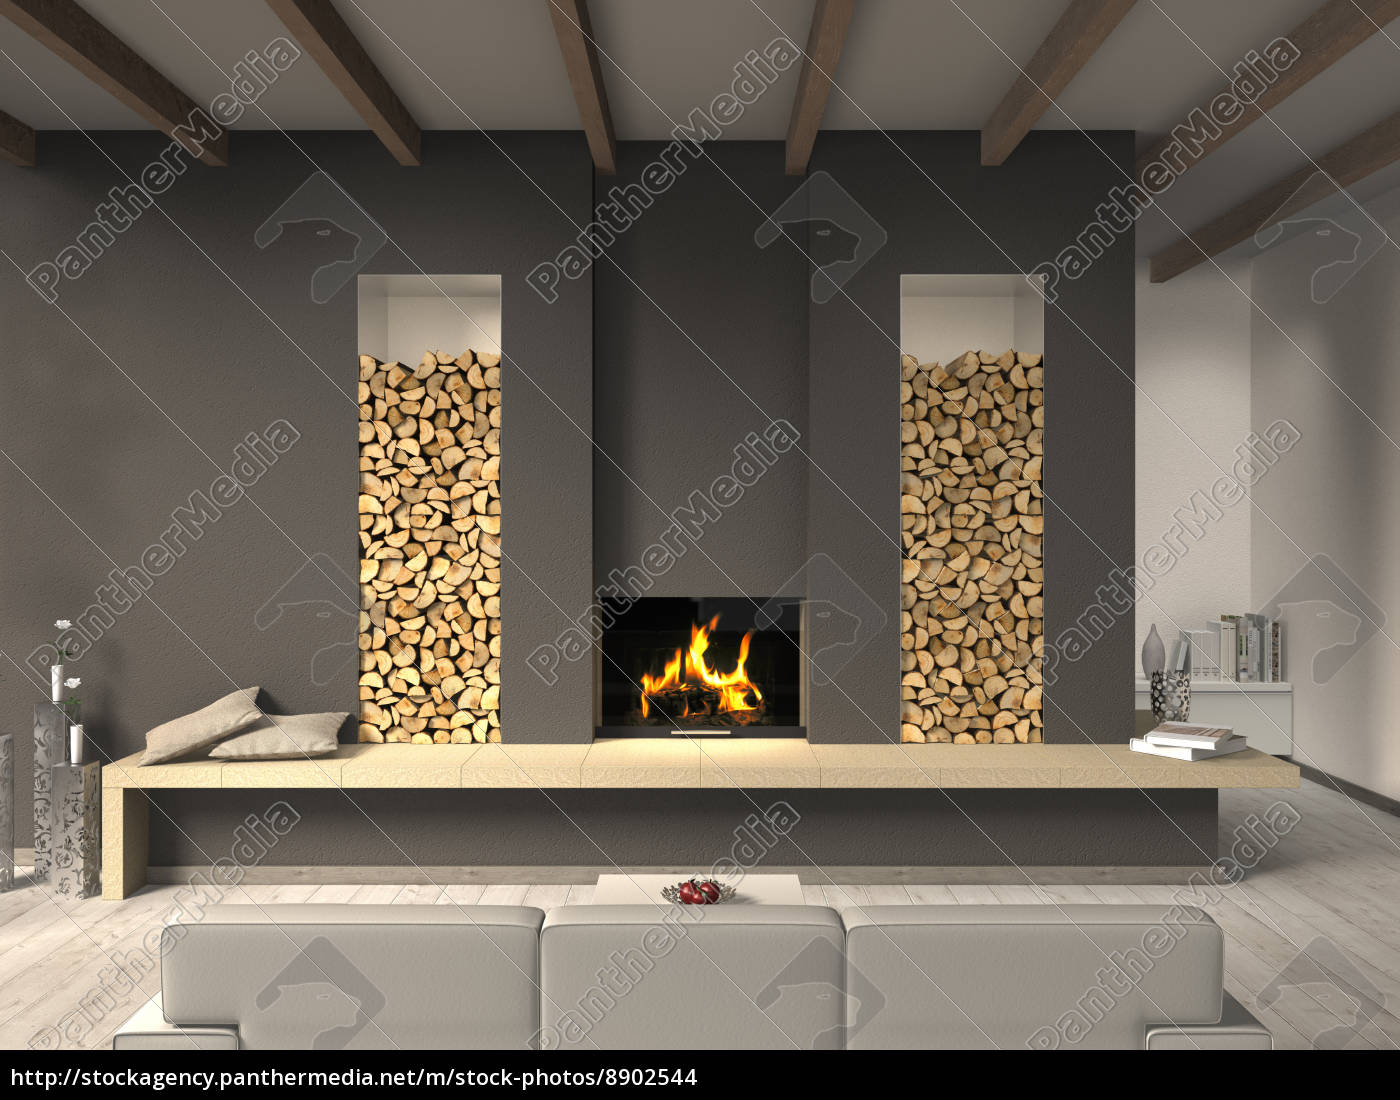 wohnzimmer mit kamin und balkendecke lizenzfreies foto. Black Bedroom Furniture Sets. Home Design Ideas